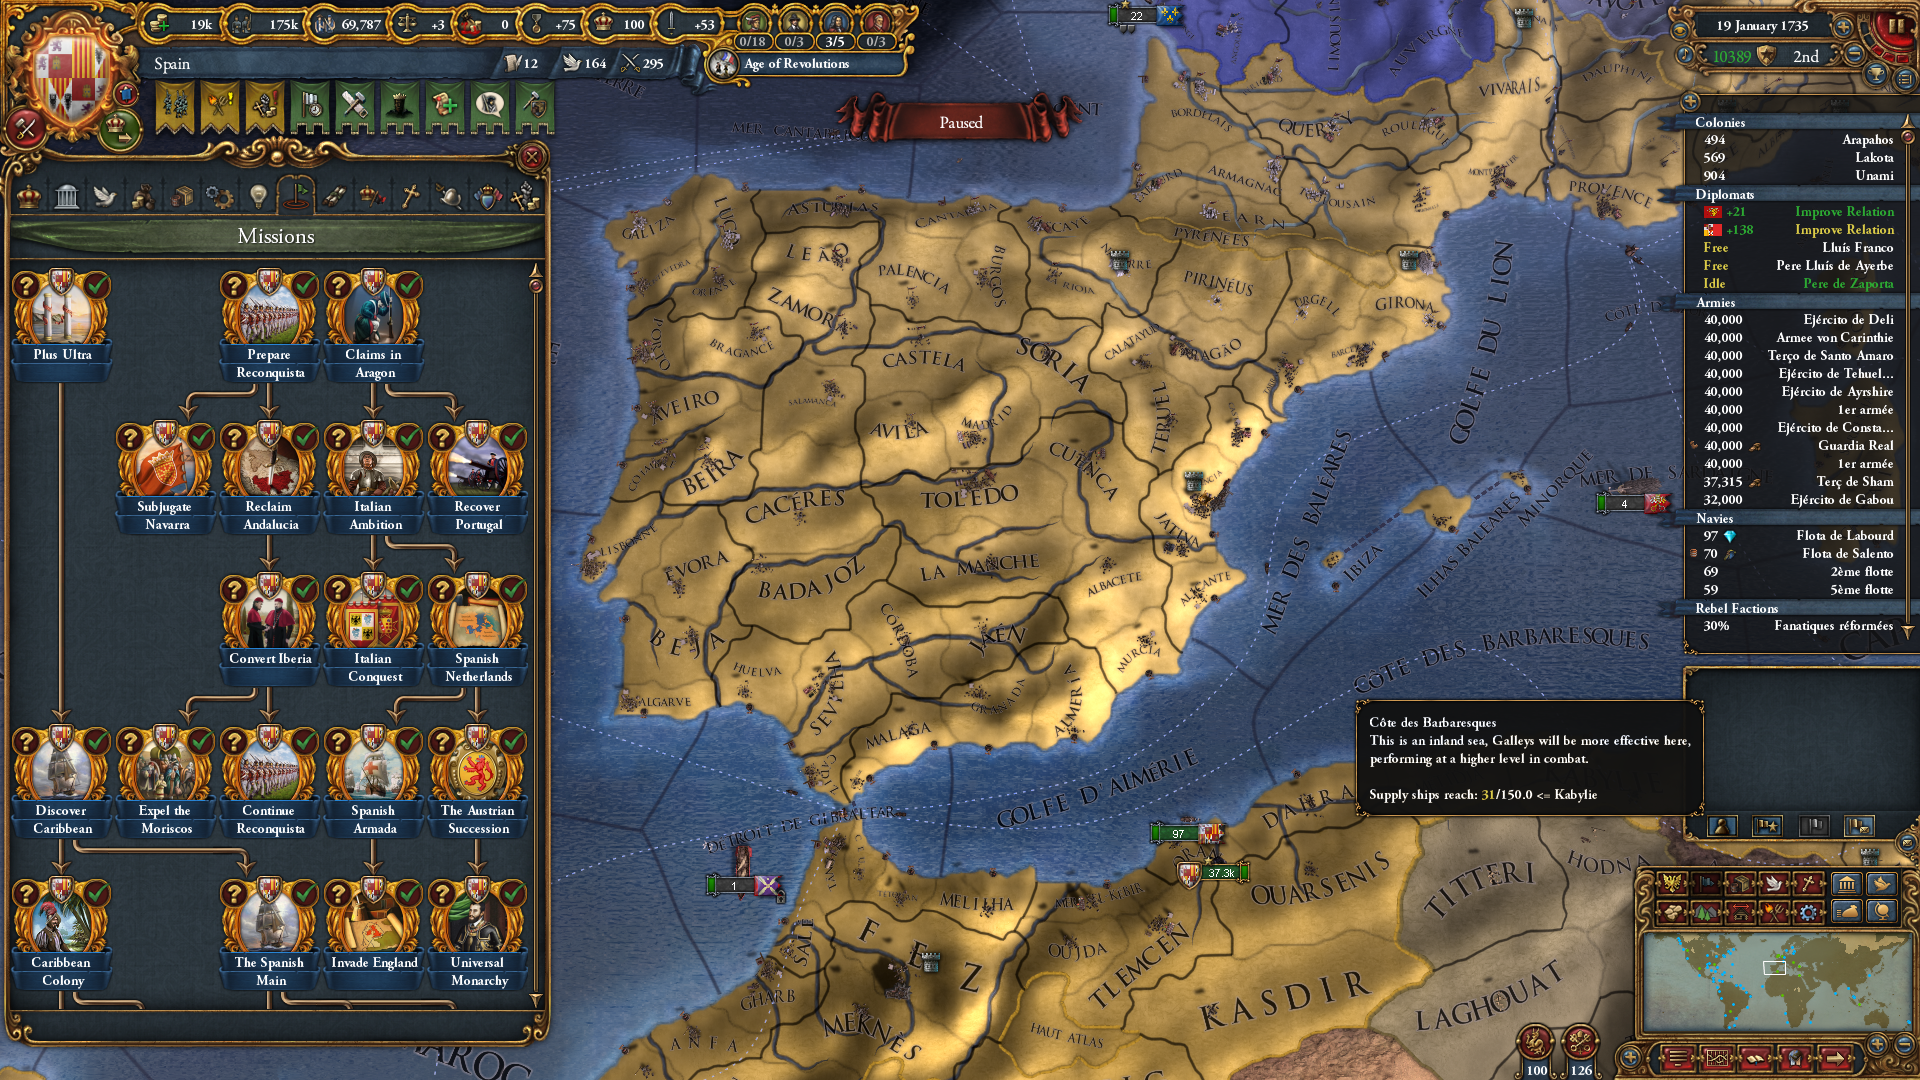 Aragon - Spain Missions | Paradox Interactive Forums